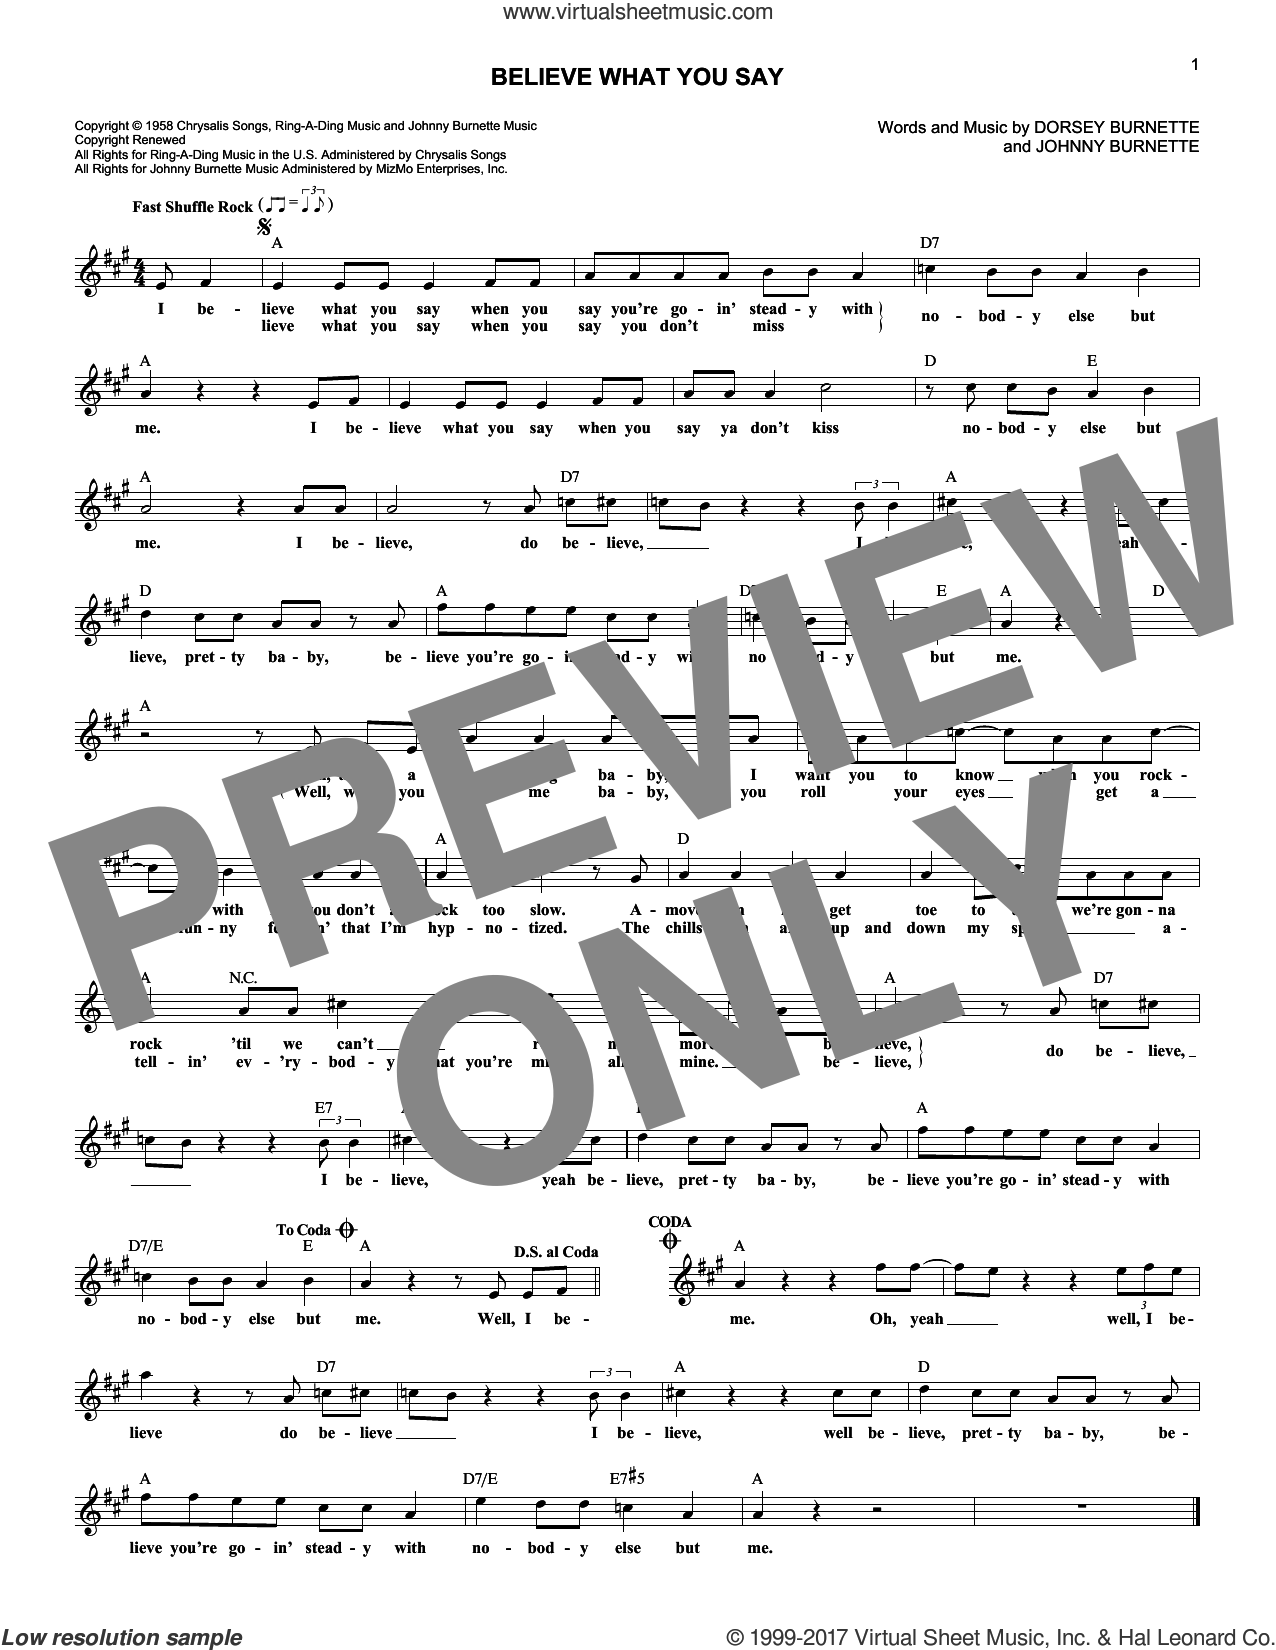 Believe What You Say sheet music for voice and other instruments (fake book) by Johnny Burnette, Ricky Nelson and Dorsey Burnette. Score Image Preview.